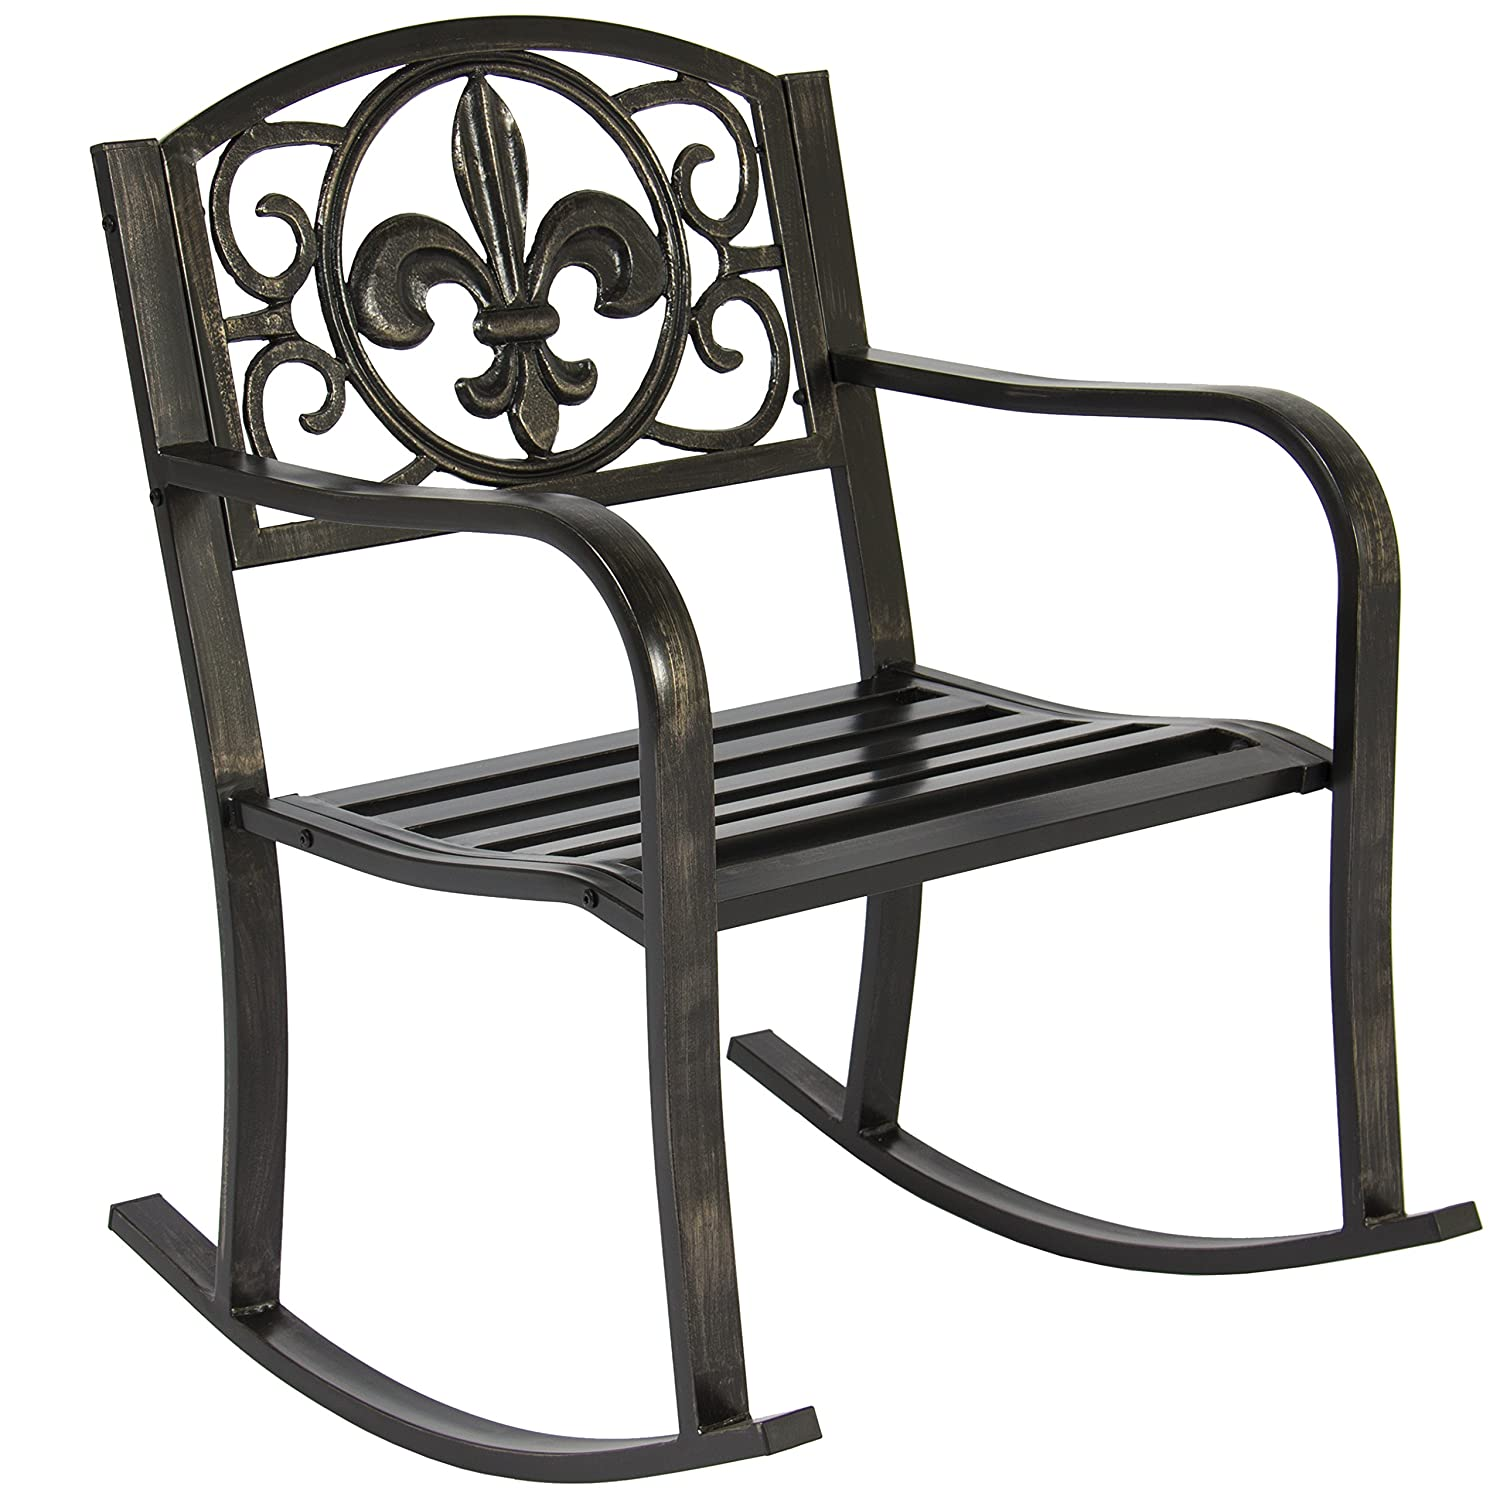 Patio Rocking Chairs | Amazon.com